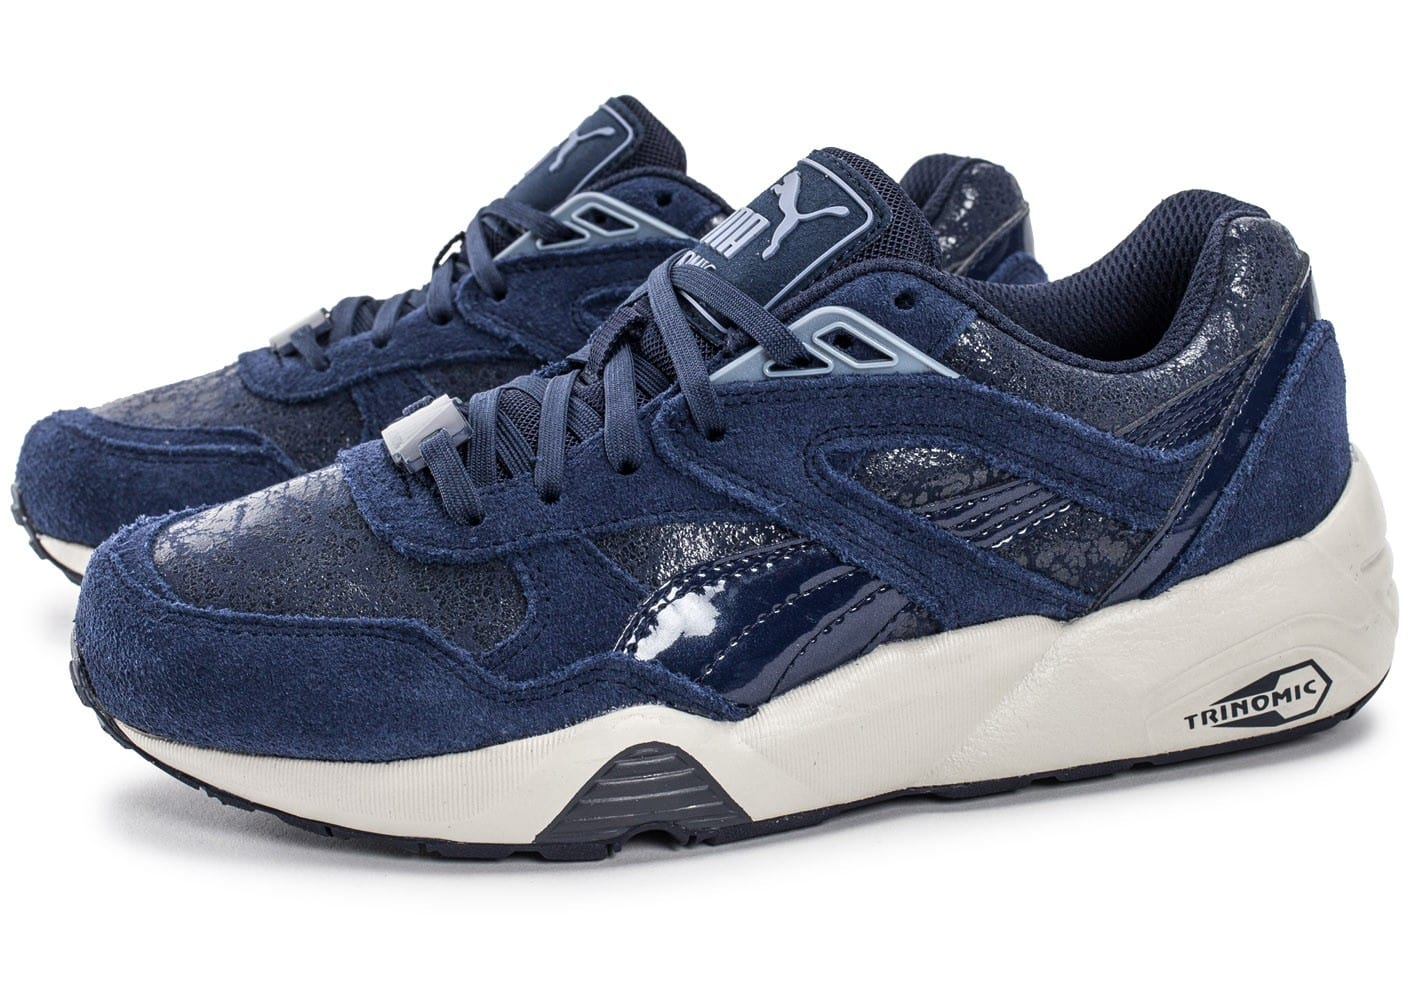 Trinomic Specific Chaussures Baskets Element R698 Bleu Marine Puma uPwTkOZiX